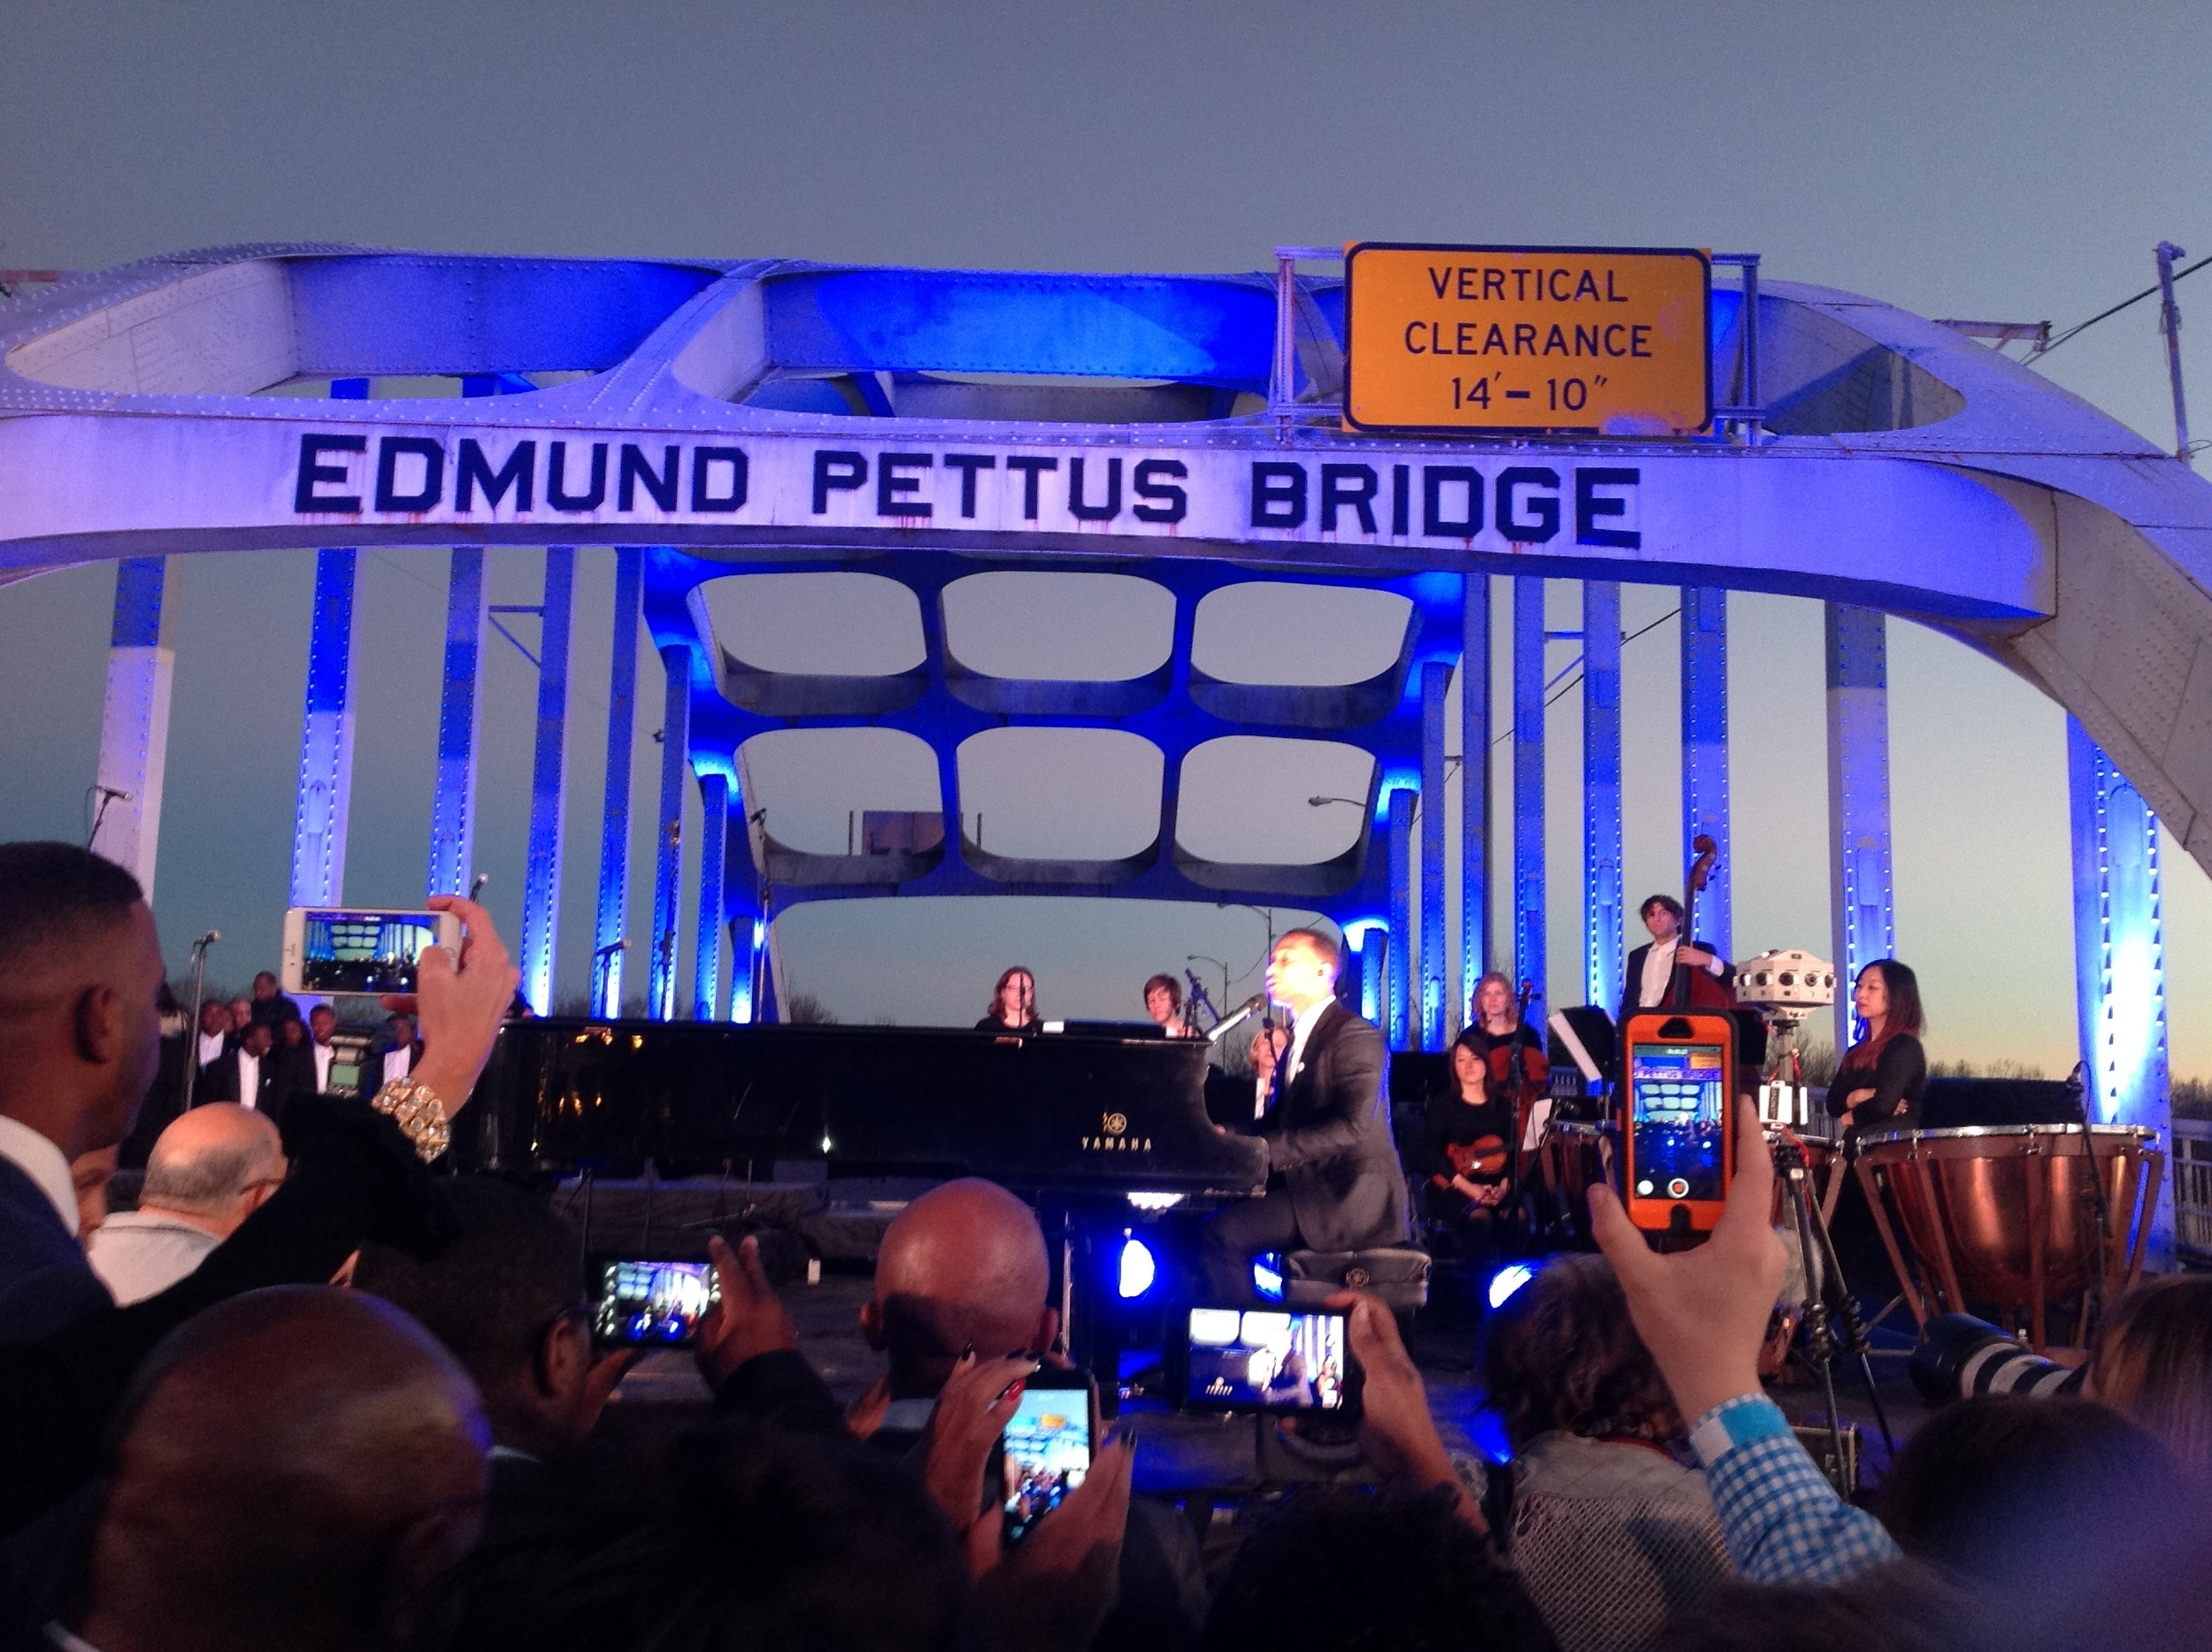 """Glory"" performance with John Legend and Common celebrating Martin Luther King day on Edmund Pettus Bridge in Montgomery, AL"